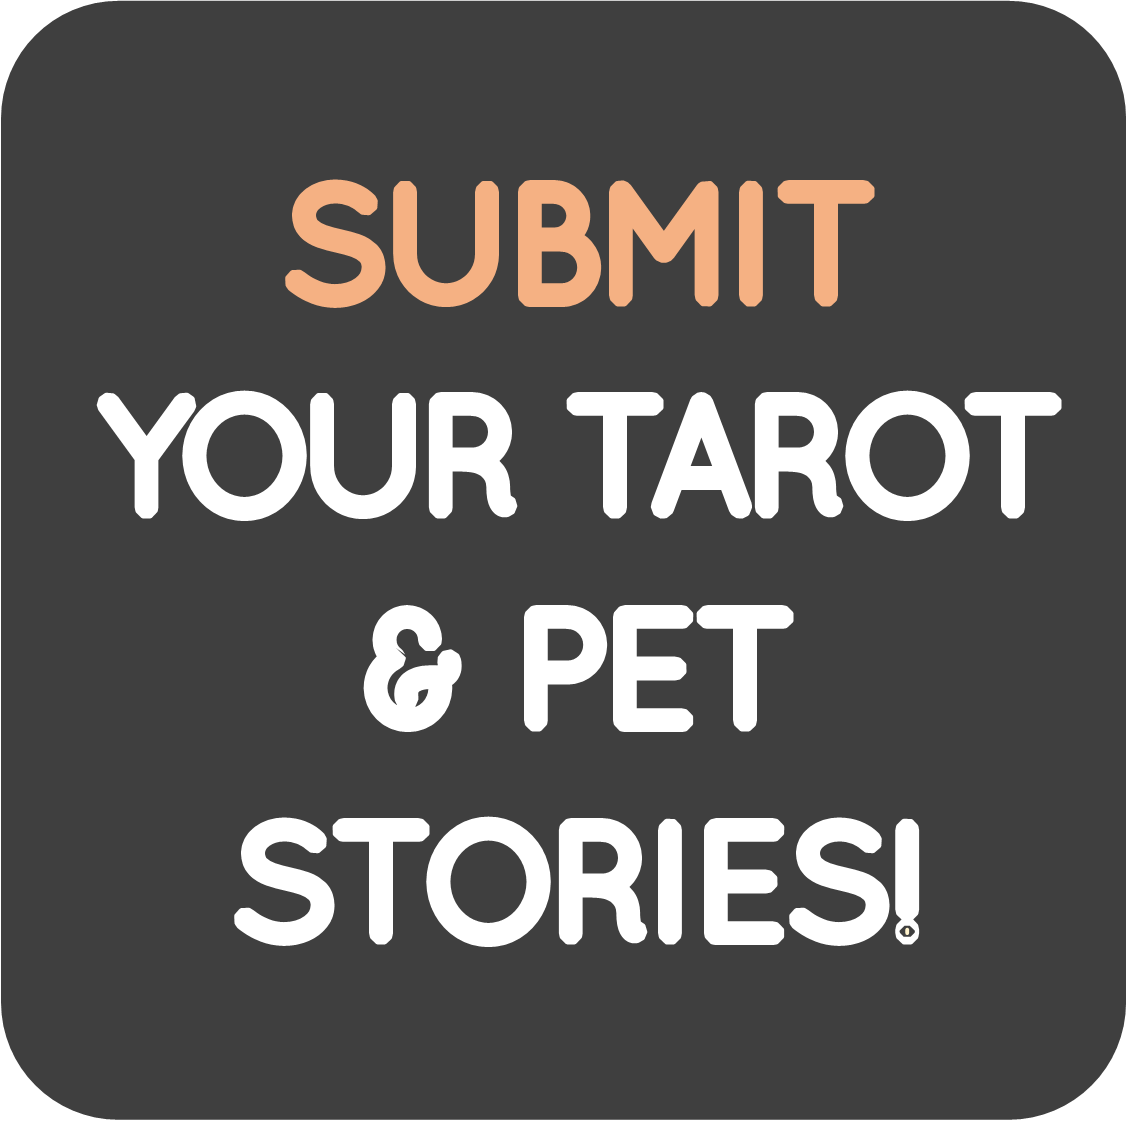 00-SUBMIT YOUR STORIES.png